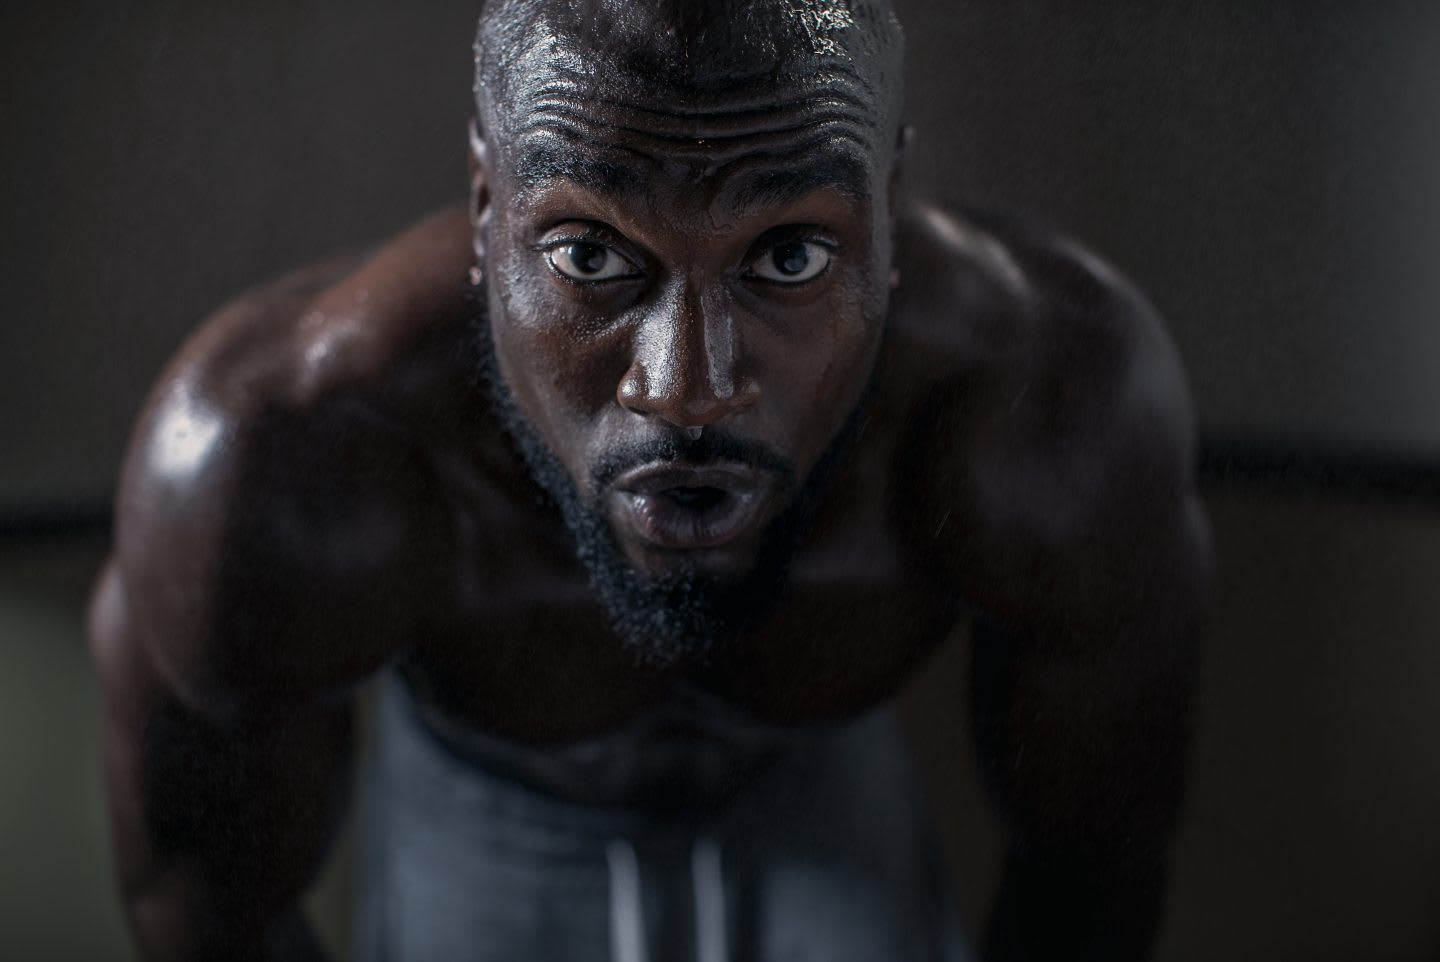 A man is looking deeply into the camera while exhaling during a strength workout.